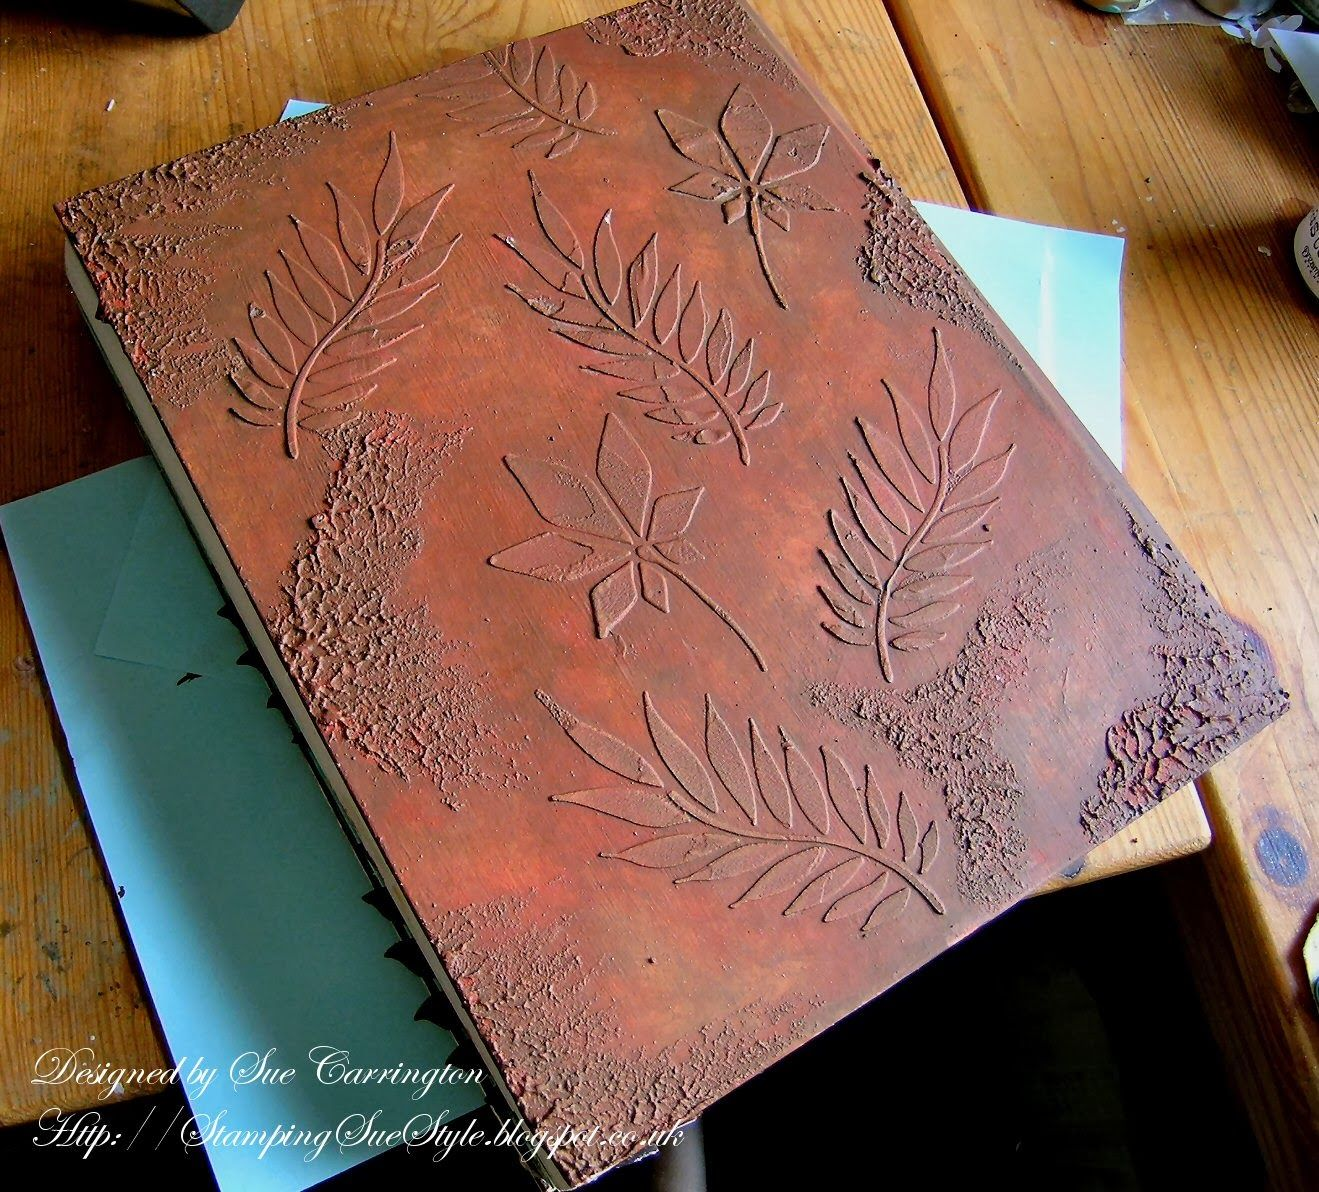 Stamping Sue Style - Book Cover